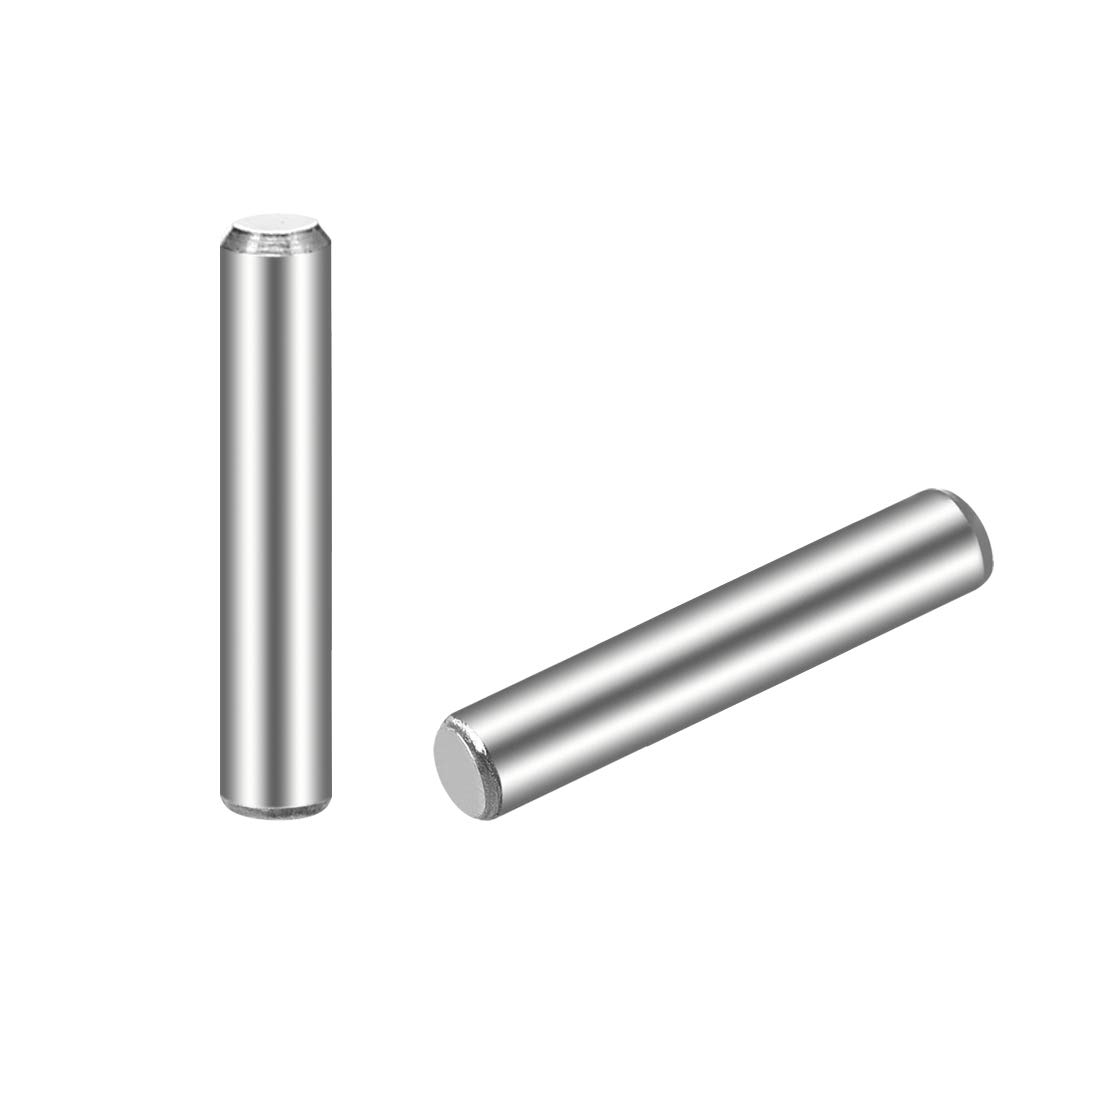 """uxcell 3 x 16mm(Approx 1/8"""") Dowel Pin 304 Stainless Steel Wood Bunk Bed Dowel Pins Shelf Pegs Support Shelves 25Pcs"""